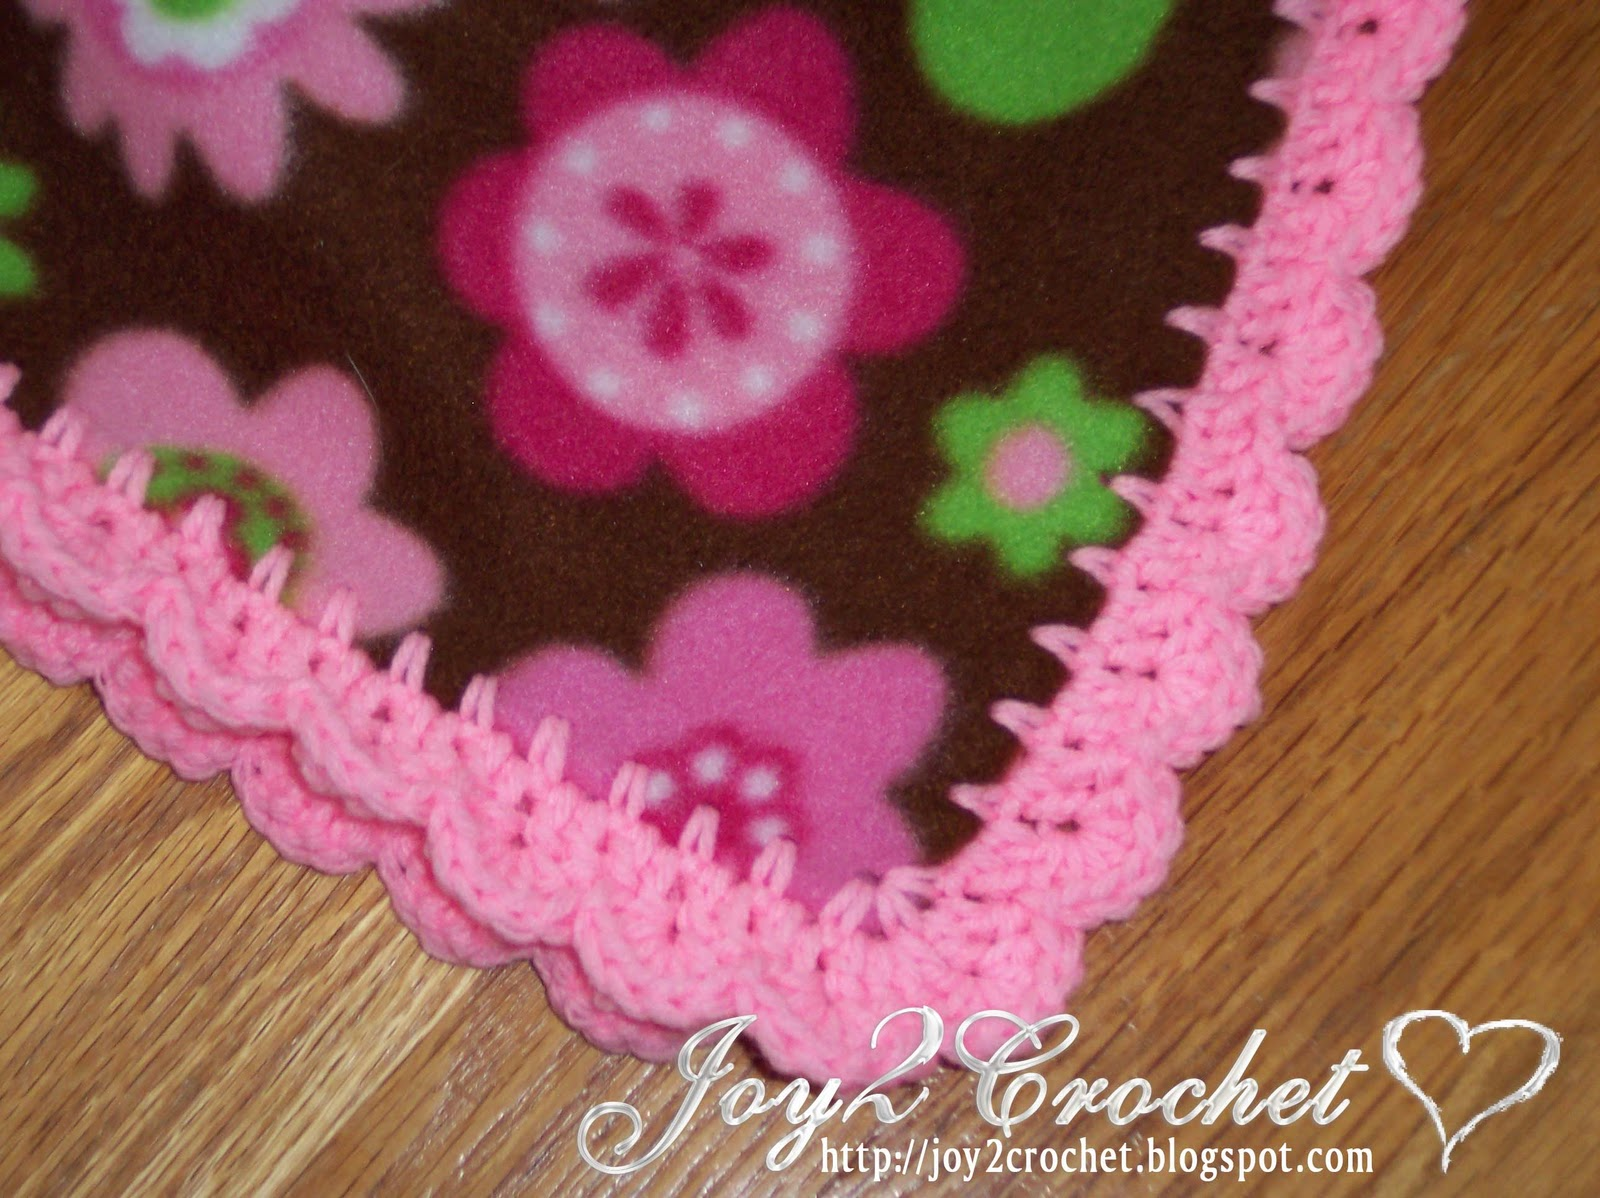 Crocheting Edging On Fleece : Joy 2 Crochet: Fleece Baby Blankets with Crocheted Edge